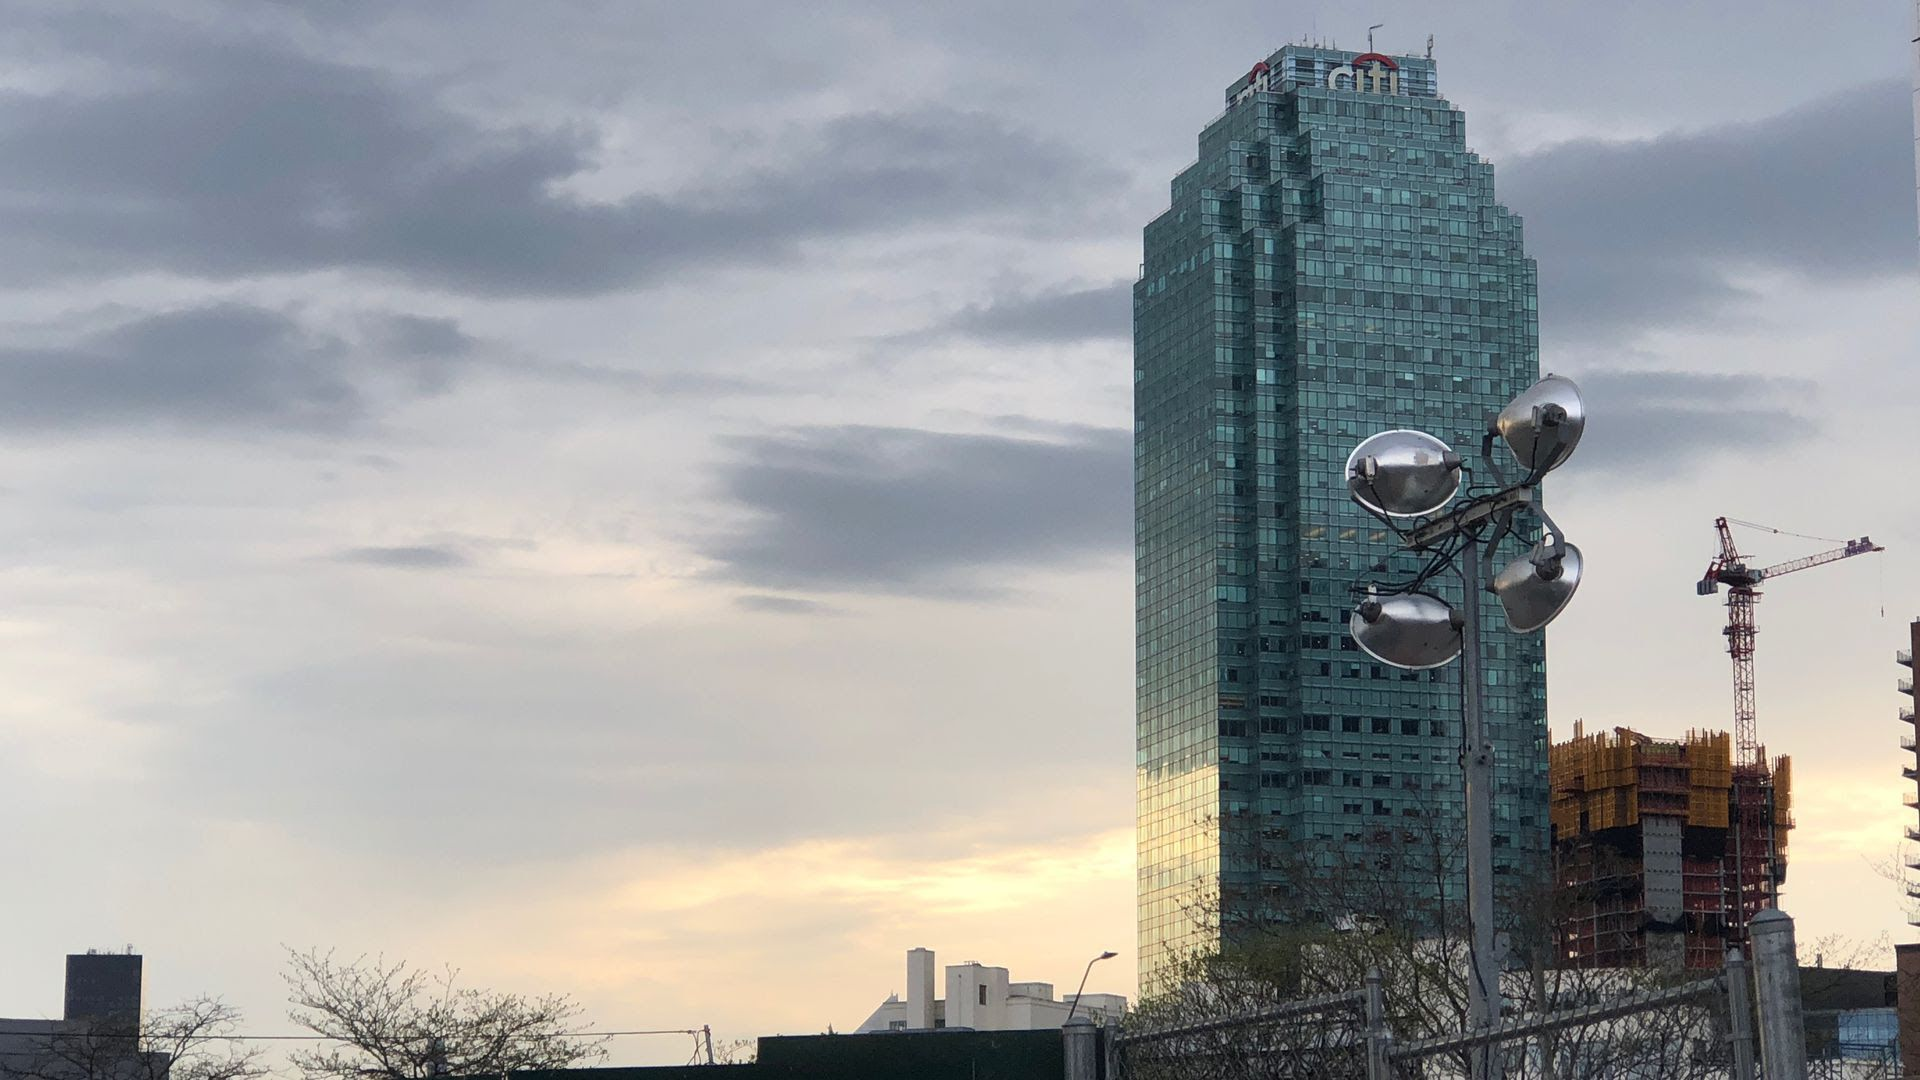 A photo of the Citi building in Long Island City, New York.